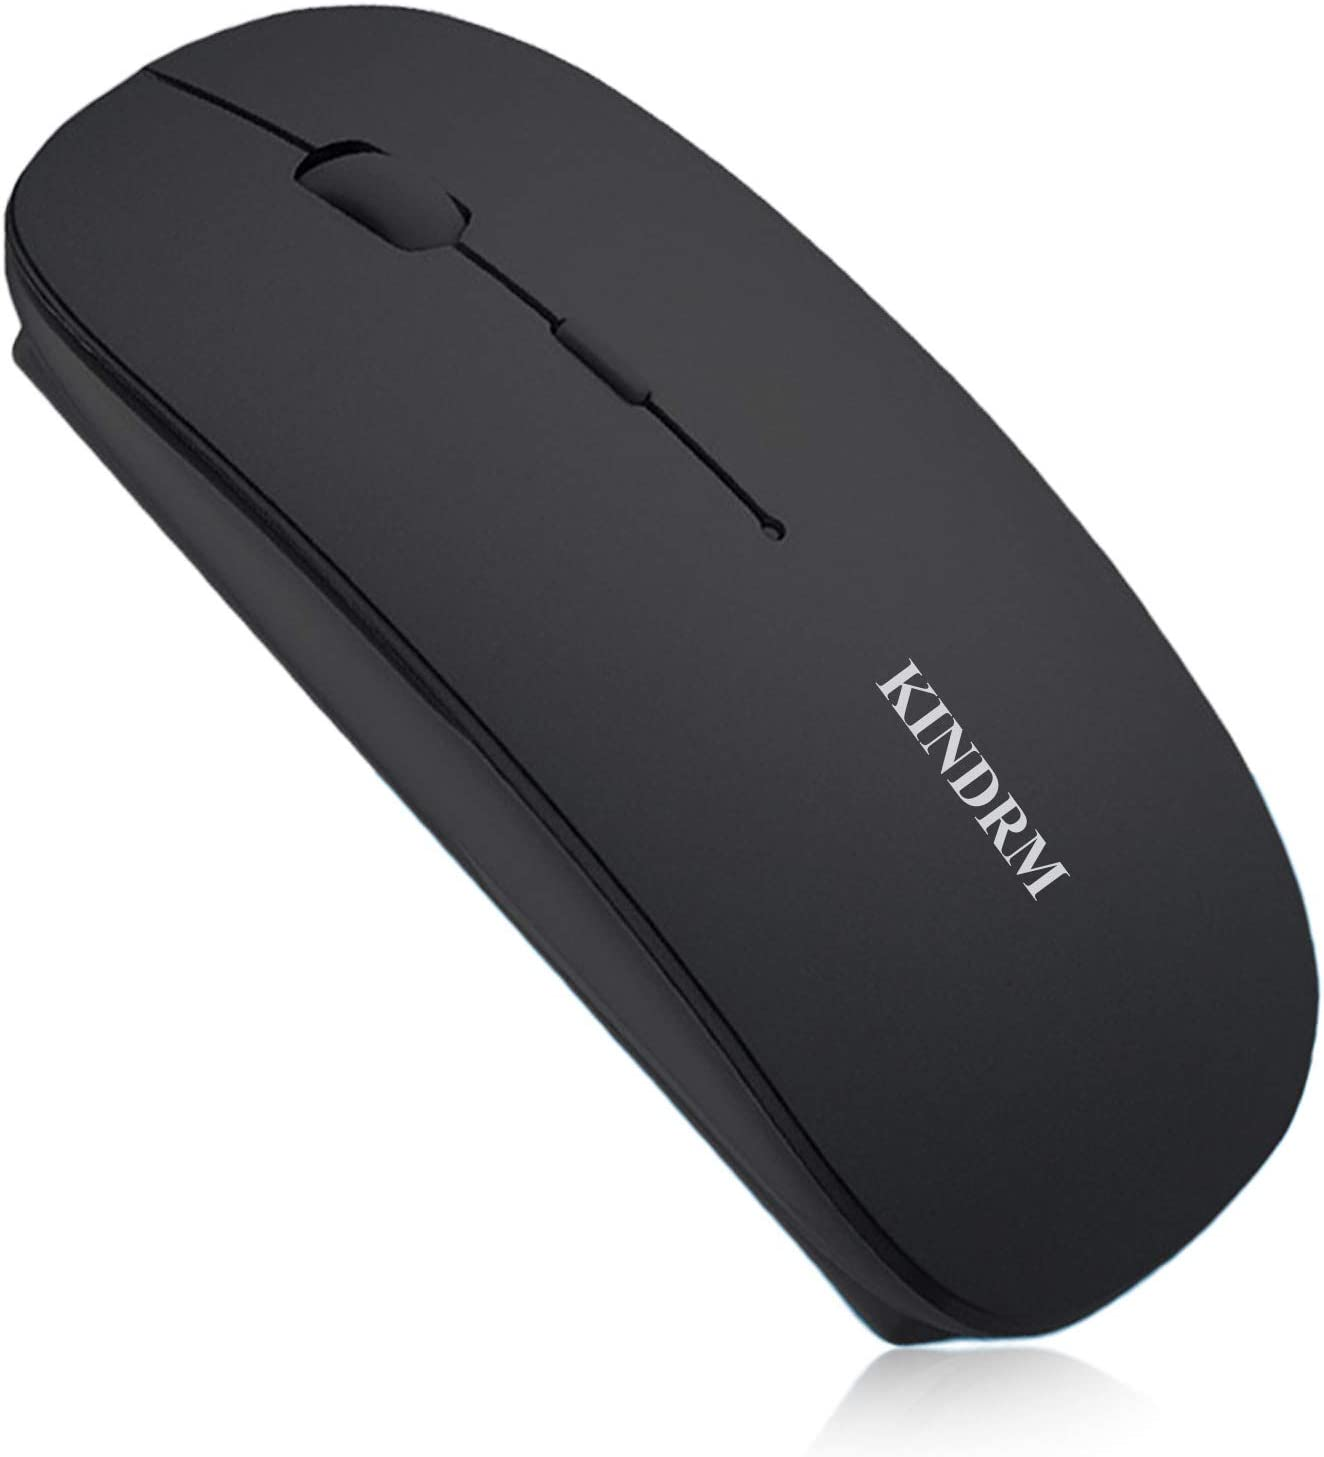 Bluetooth Wireless Mouse, KINDRM Portable Slim Dual Mode (Bluetooth 5.0 & 2.4G Wireless) Rechargeable Wireless Mouse for Laptop, Computer, MacBook, iPad, Tablet, Notebook, PC, Windows, Android More